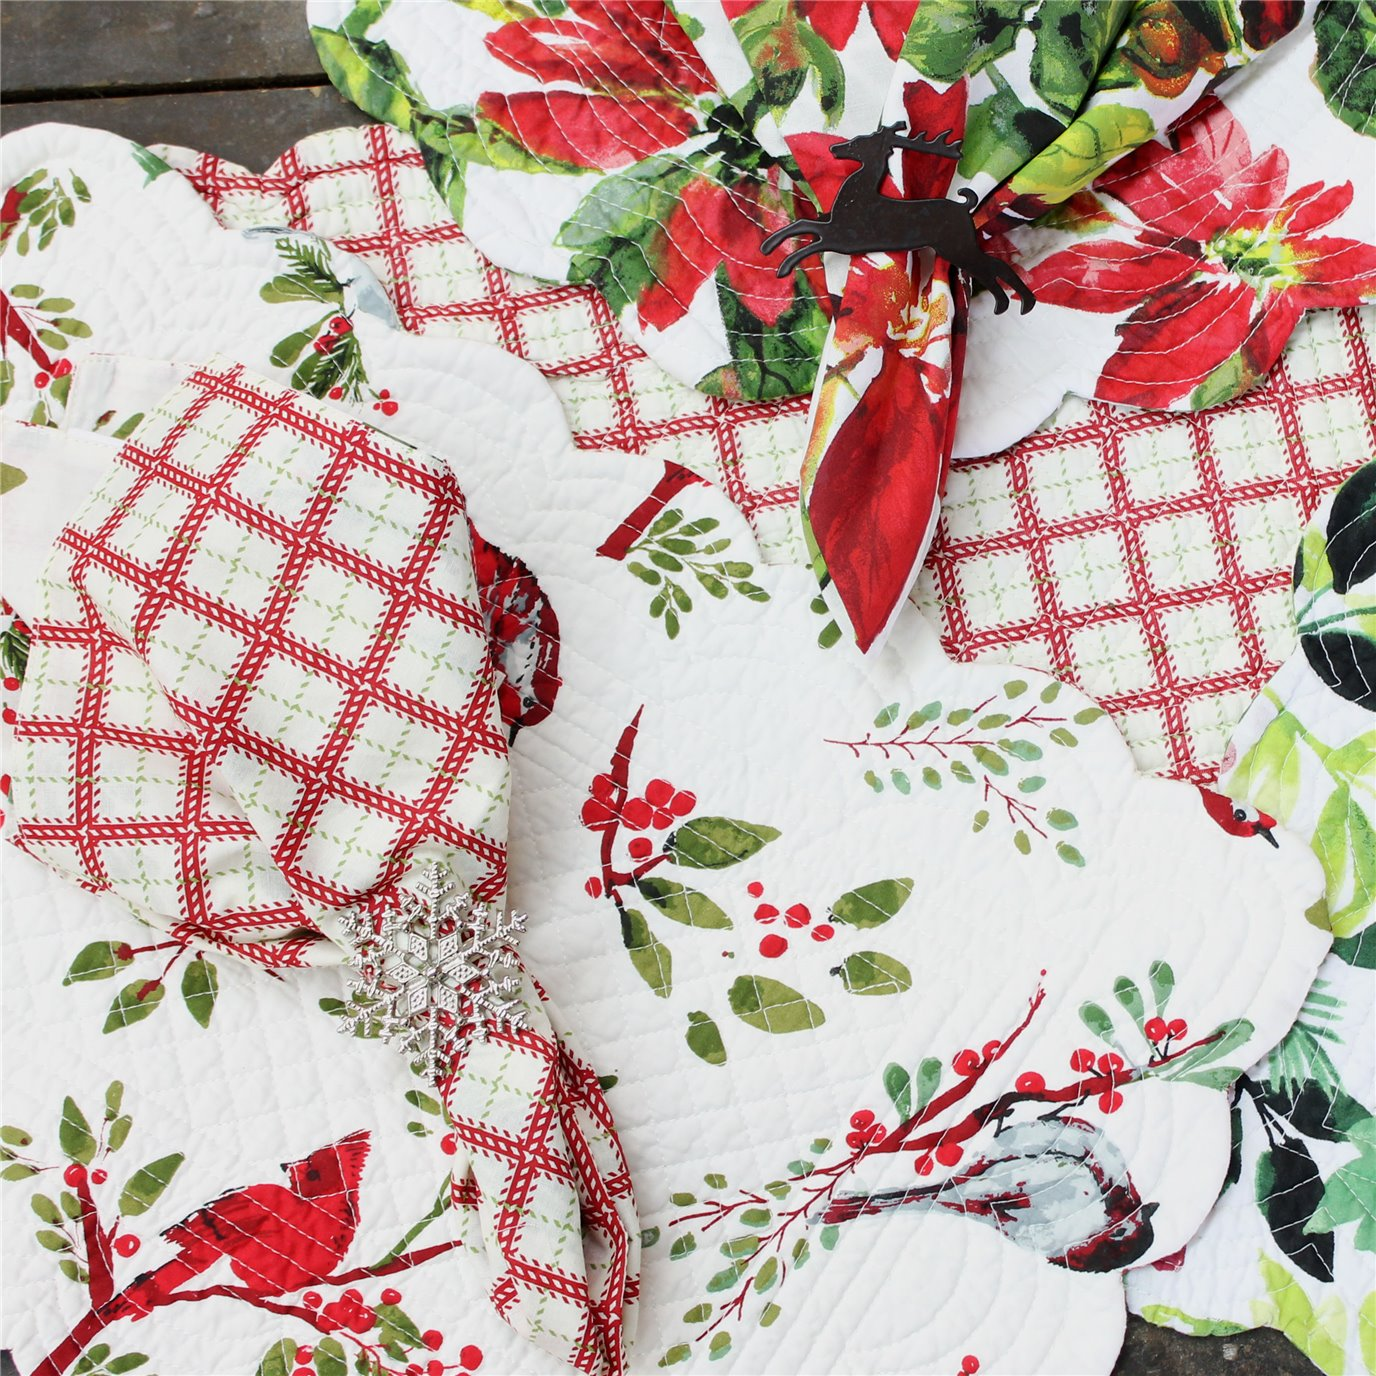 Fall & Christmas Placemats, Napkins, Accessories